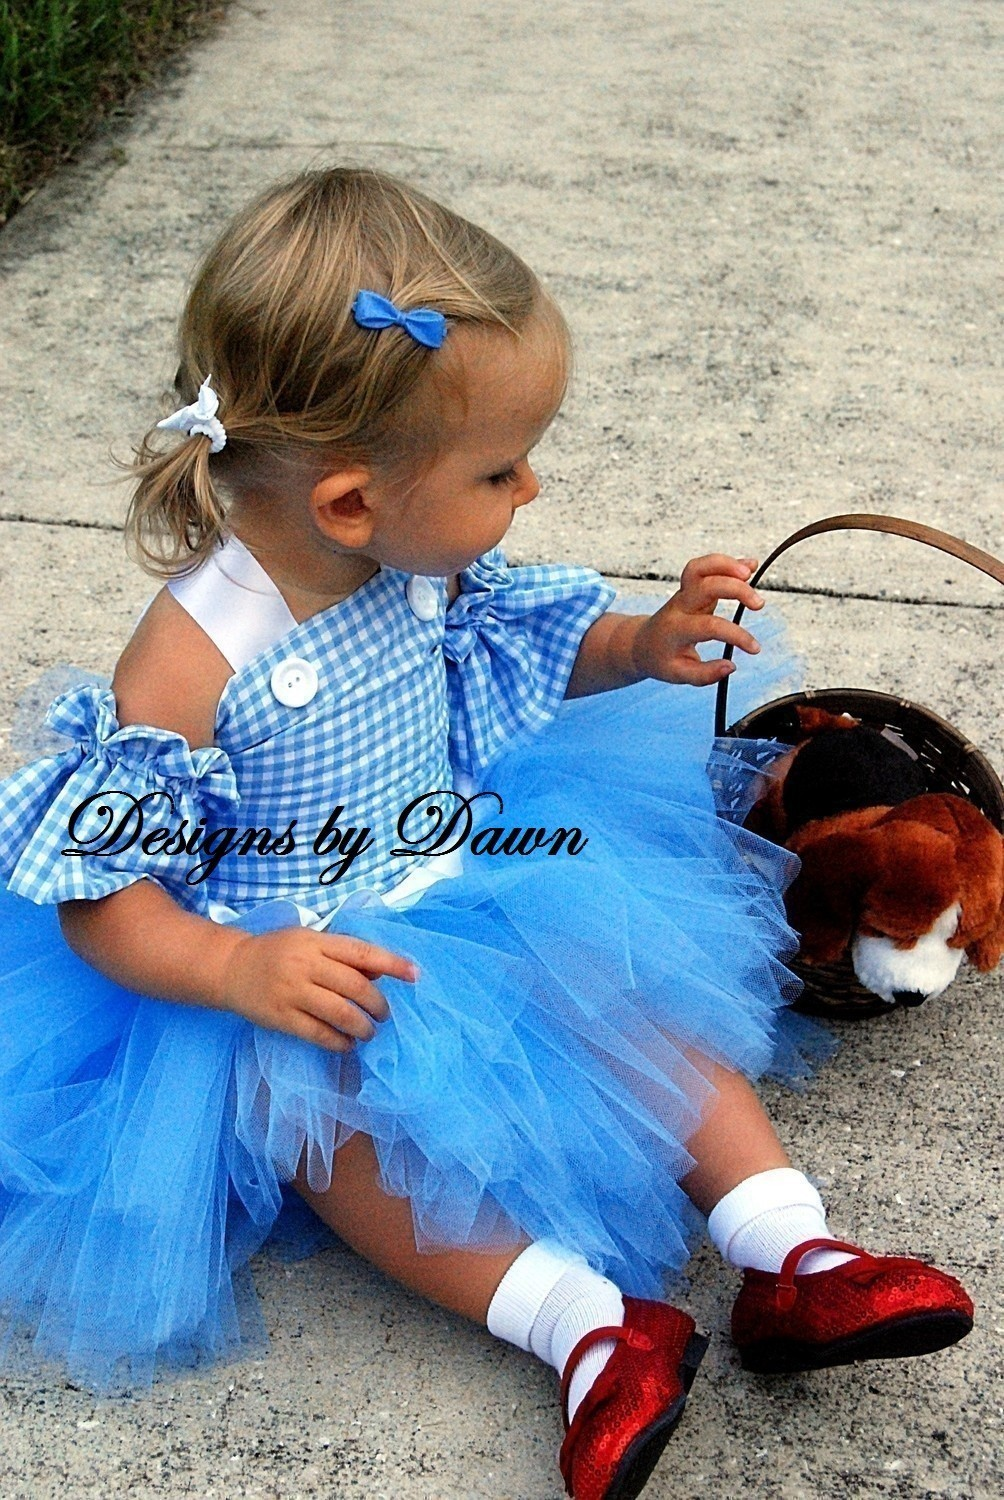 Flower Girl Dresses, Wedding Dresses, Fashion, blue, dress, Flower girl, Rainbow, Gingham, Dorothy, Somewhere over the rainbow, Wizard of oz